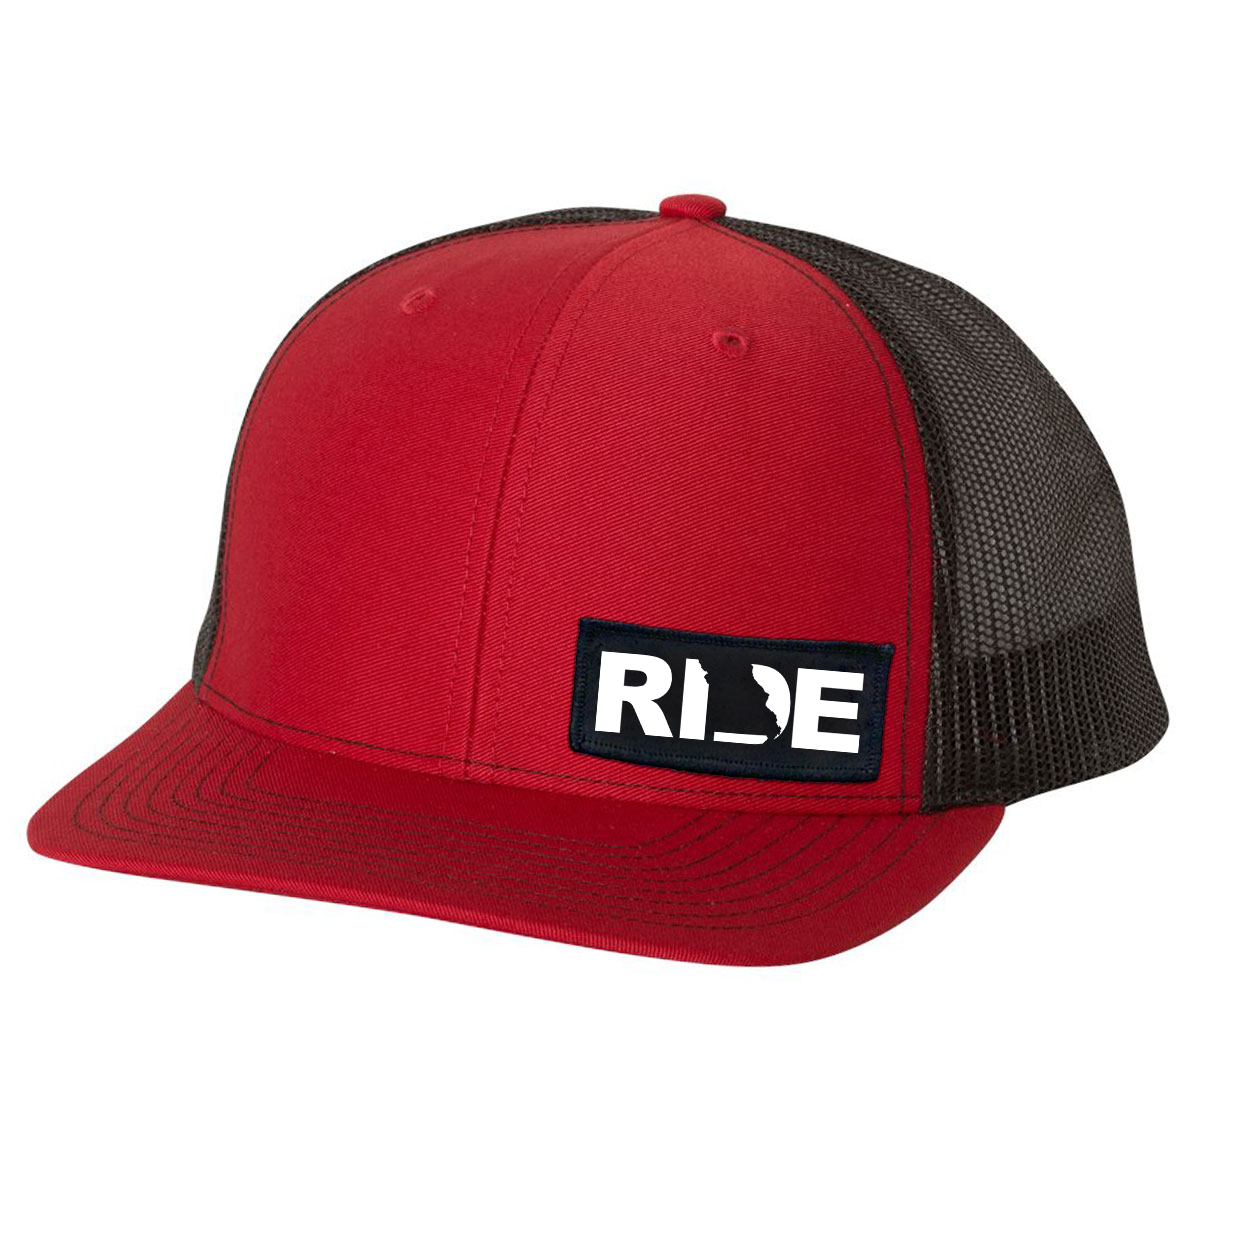 Ride Missouri Night Out Woven Patch Snapback Trucker Hat Red/Black (White Logo)